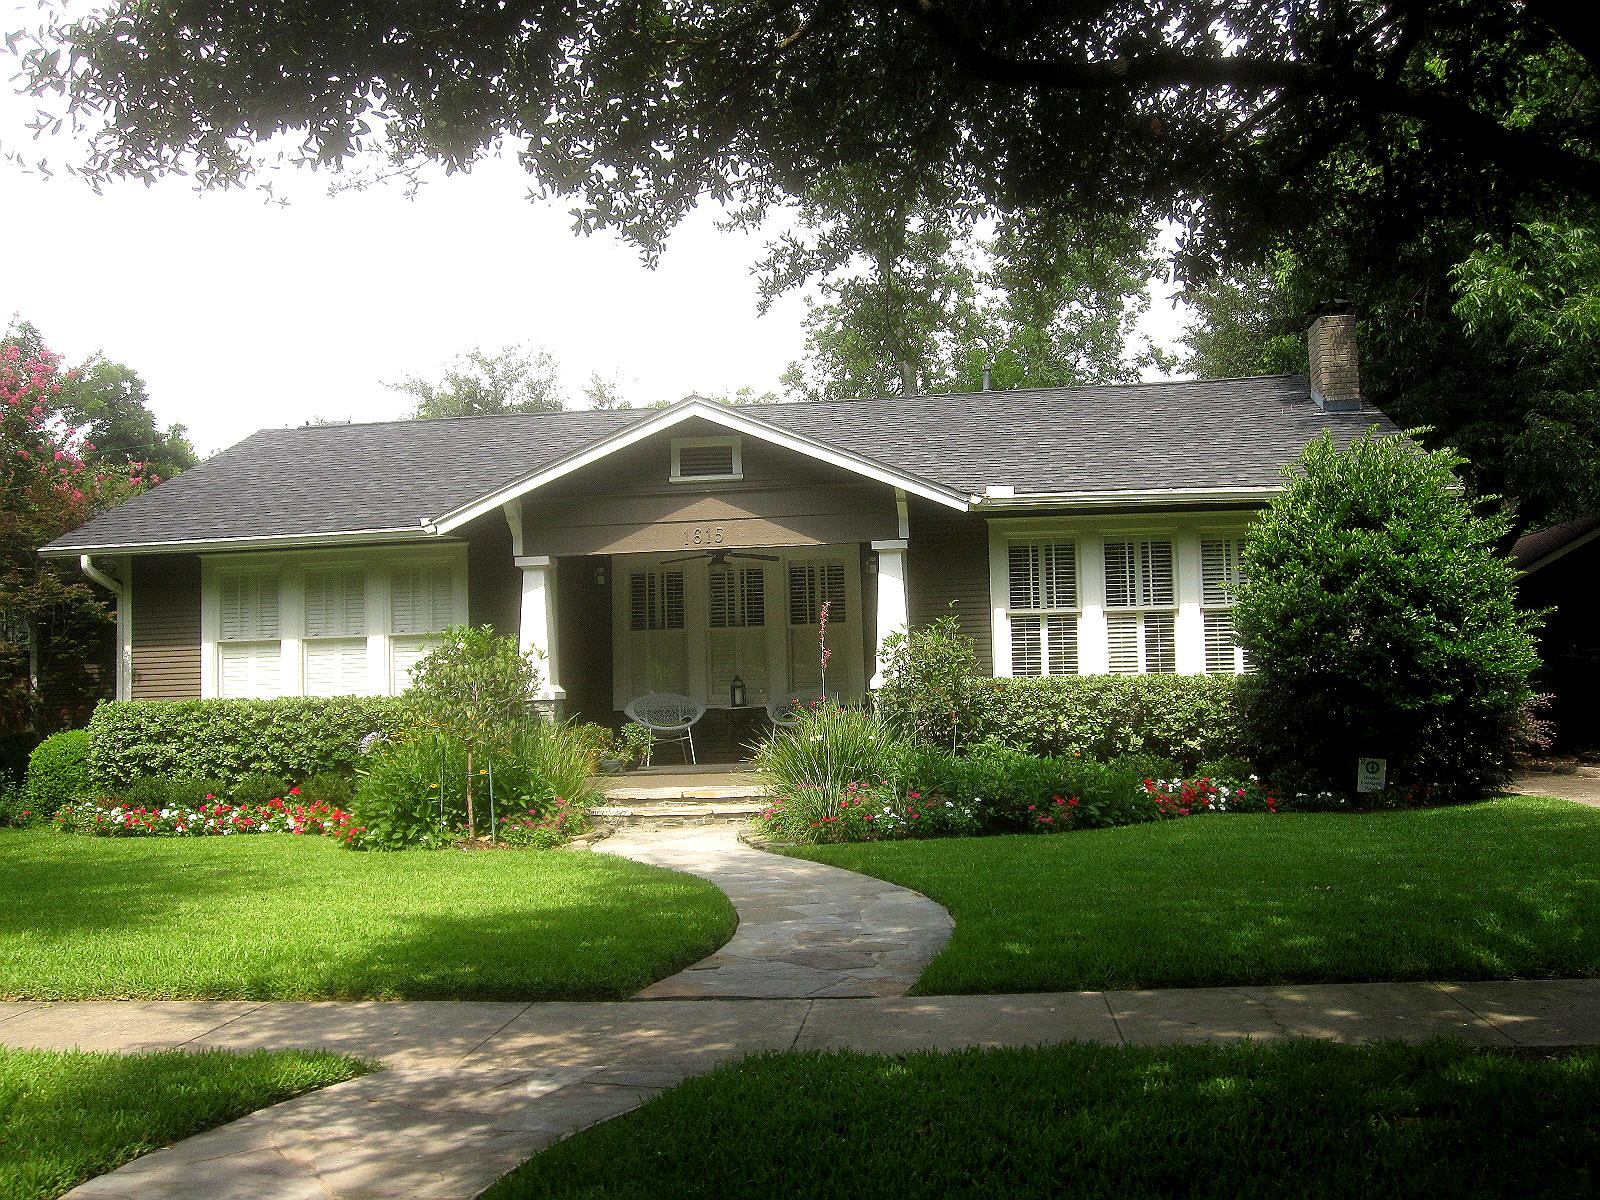 The other houston bungalow front yard garden ideas for Home front landscaping